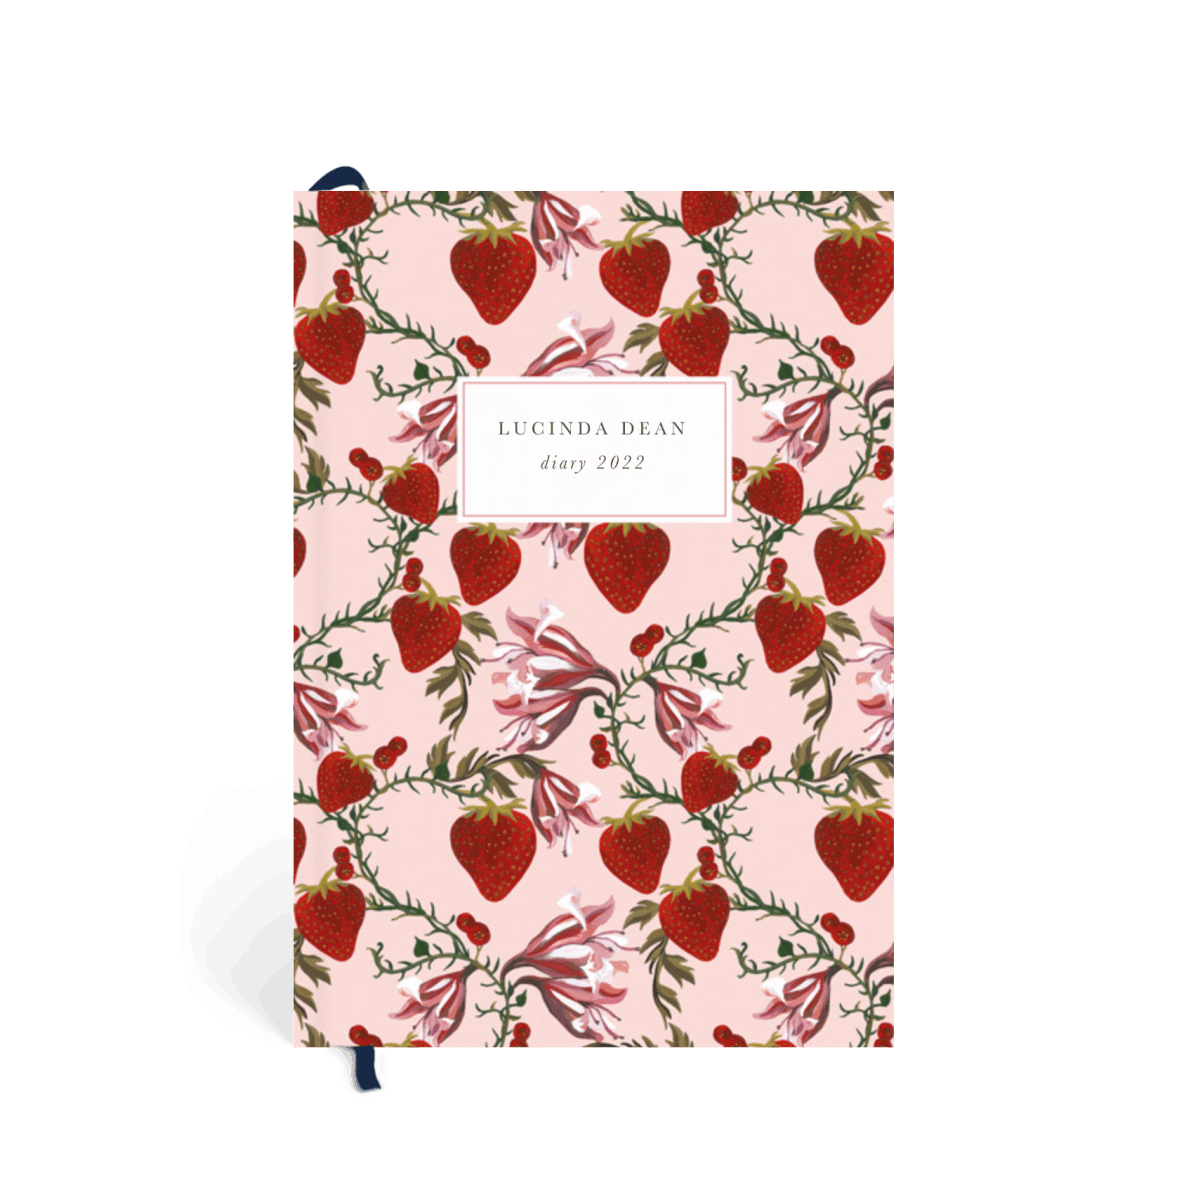 Https%3a%2f%2fwww.papier.com%2fproduct image%2f49546%2f36%2fstrawberry floral pink 12168 front 1562667571.png?ixlib=rb 1.1